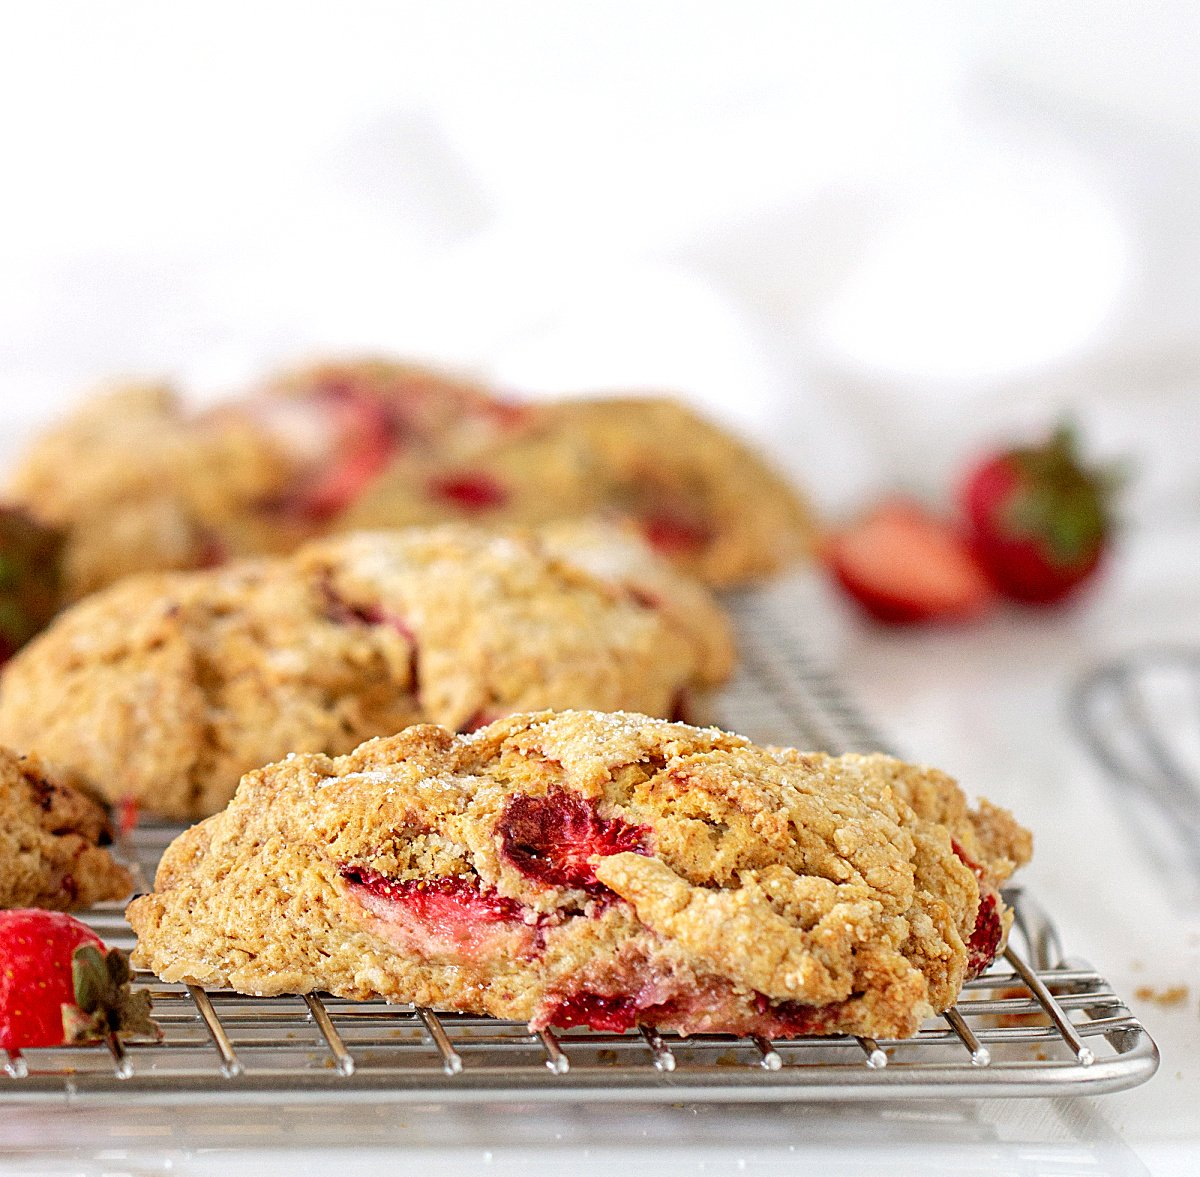 Strawberry scones on silver wire rack, white background